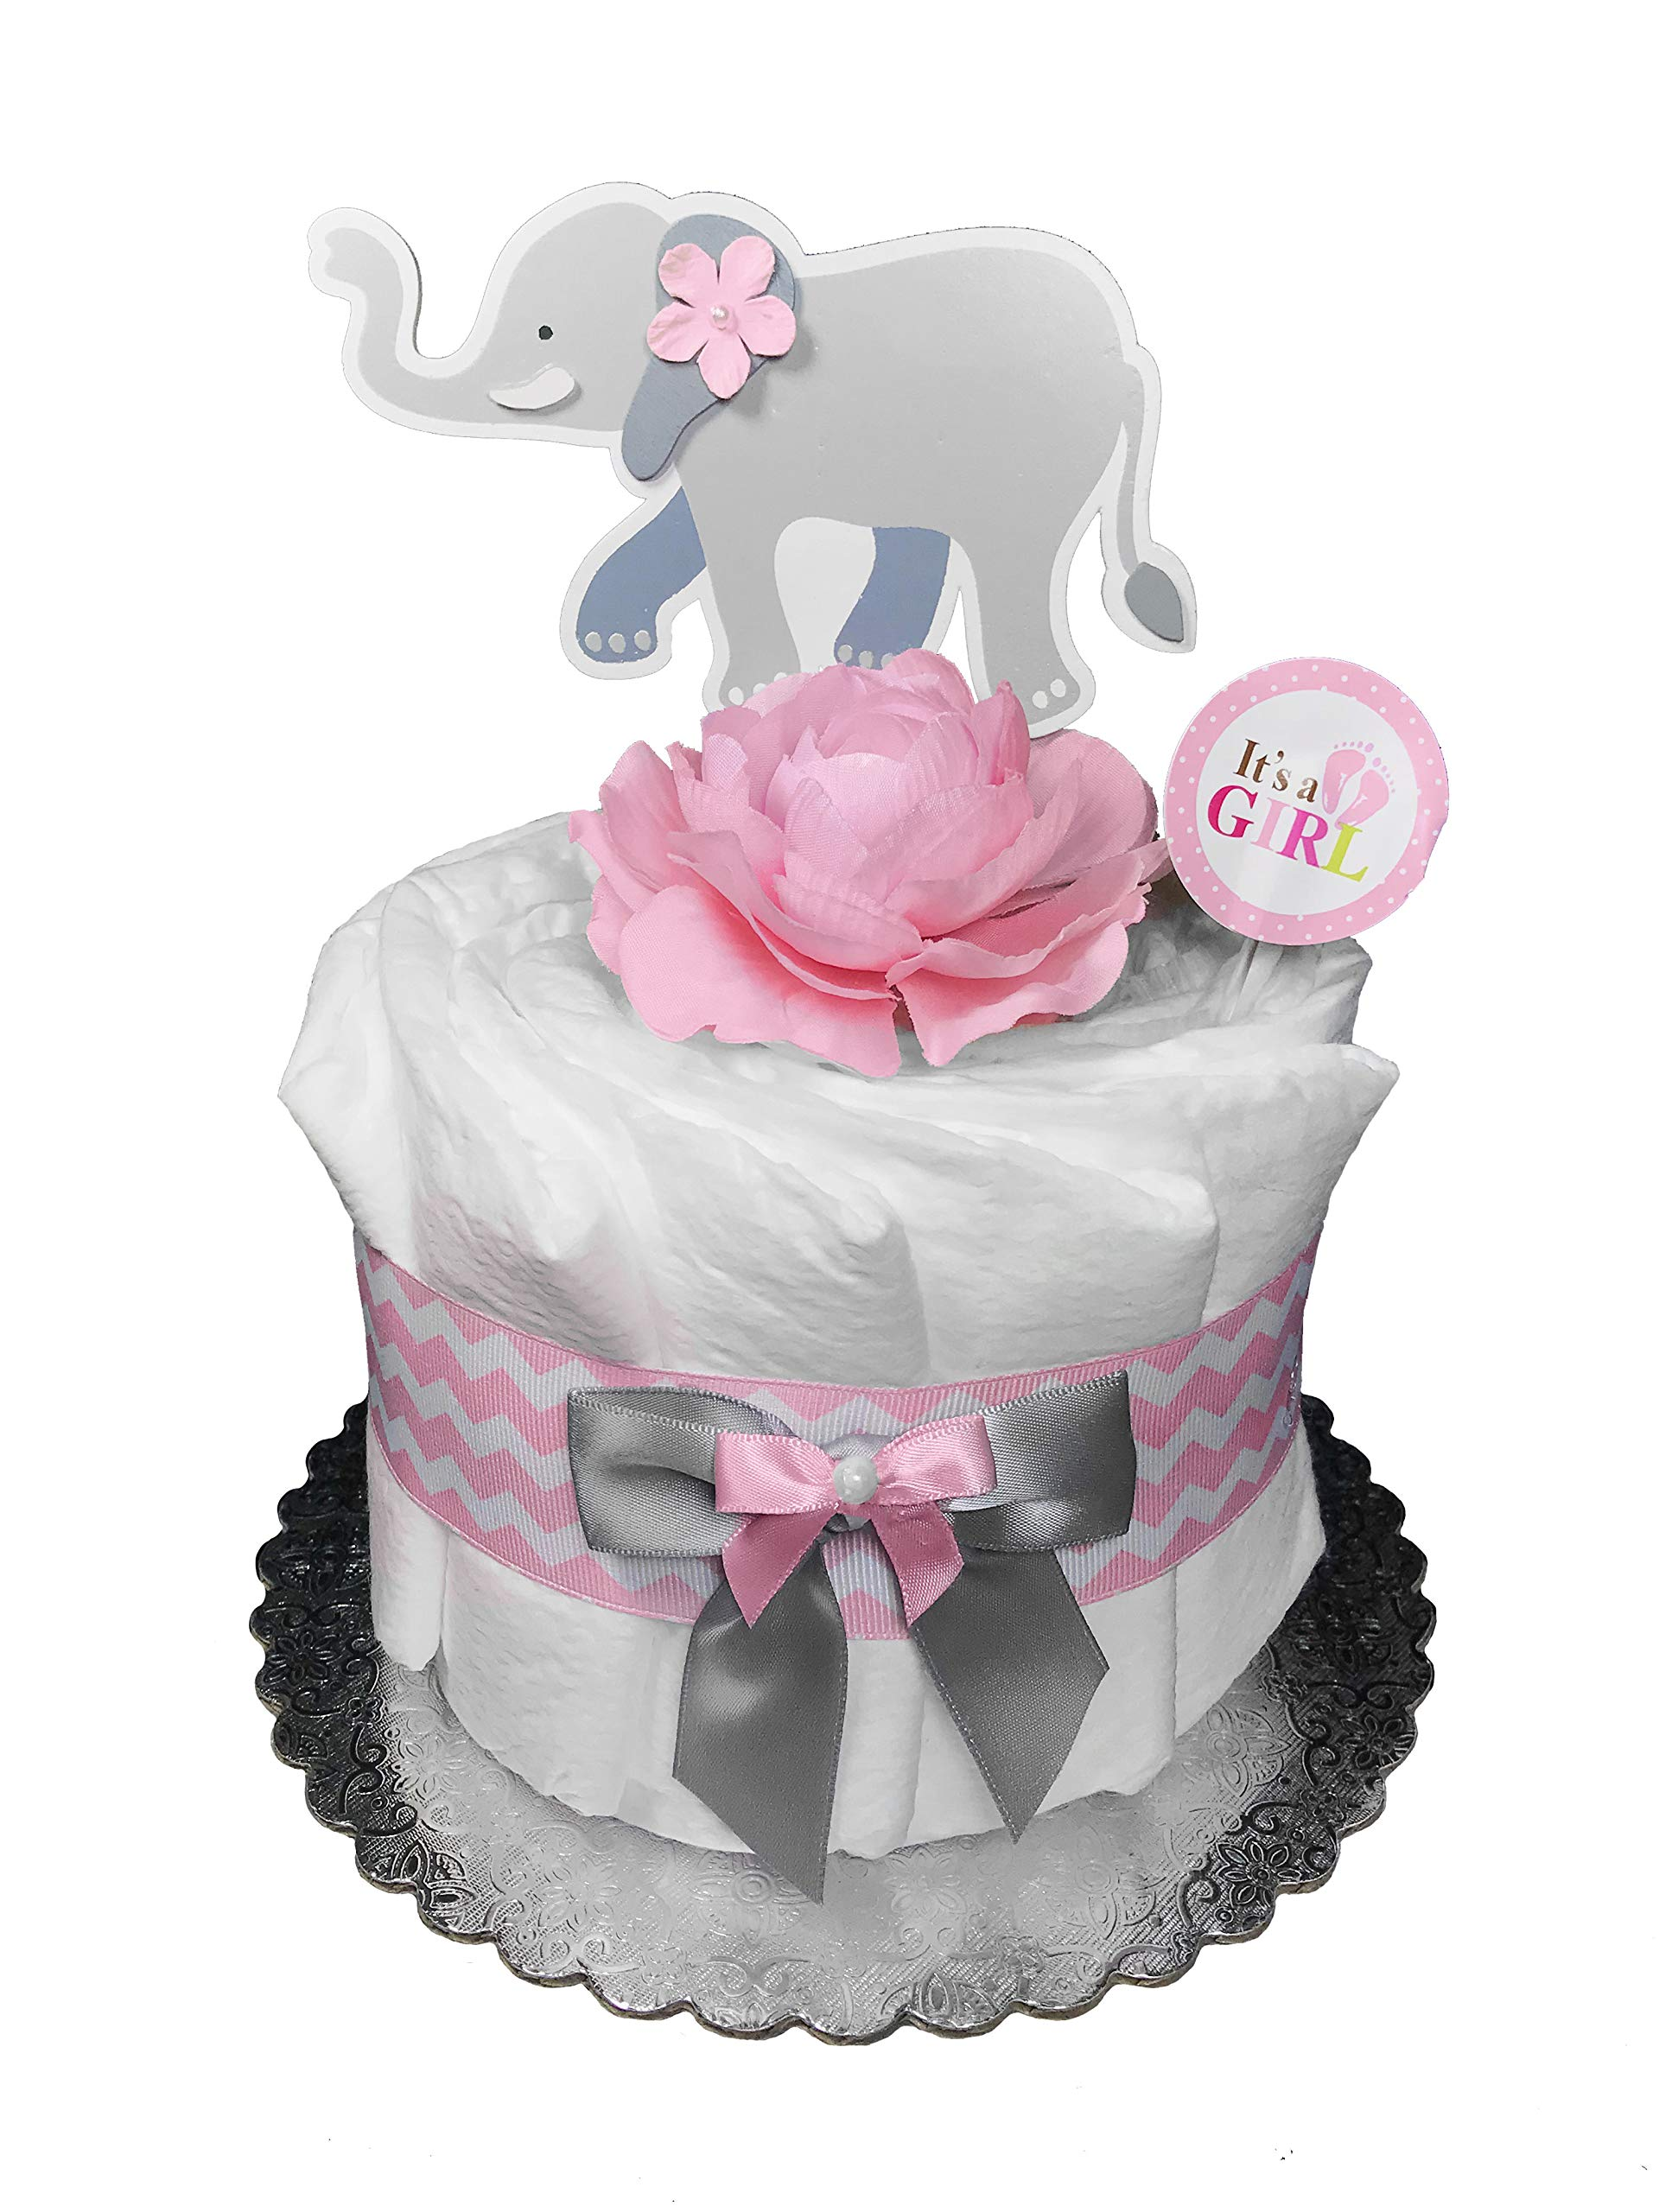 Elephant Diaper Cake - Baby Shower Mini Centerpiece - Newborn Gift